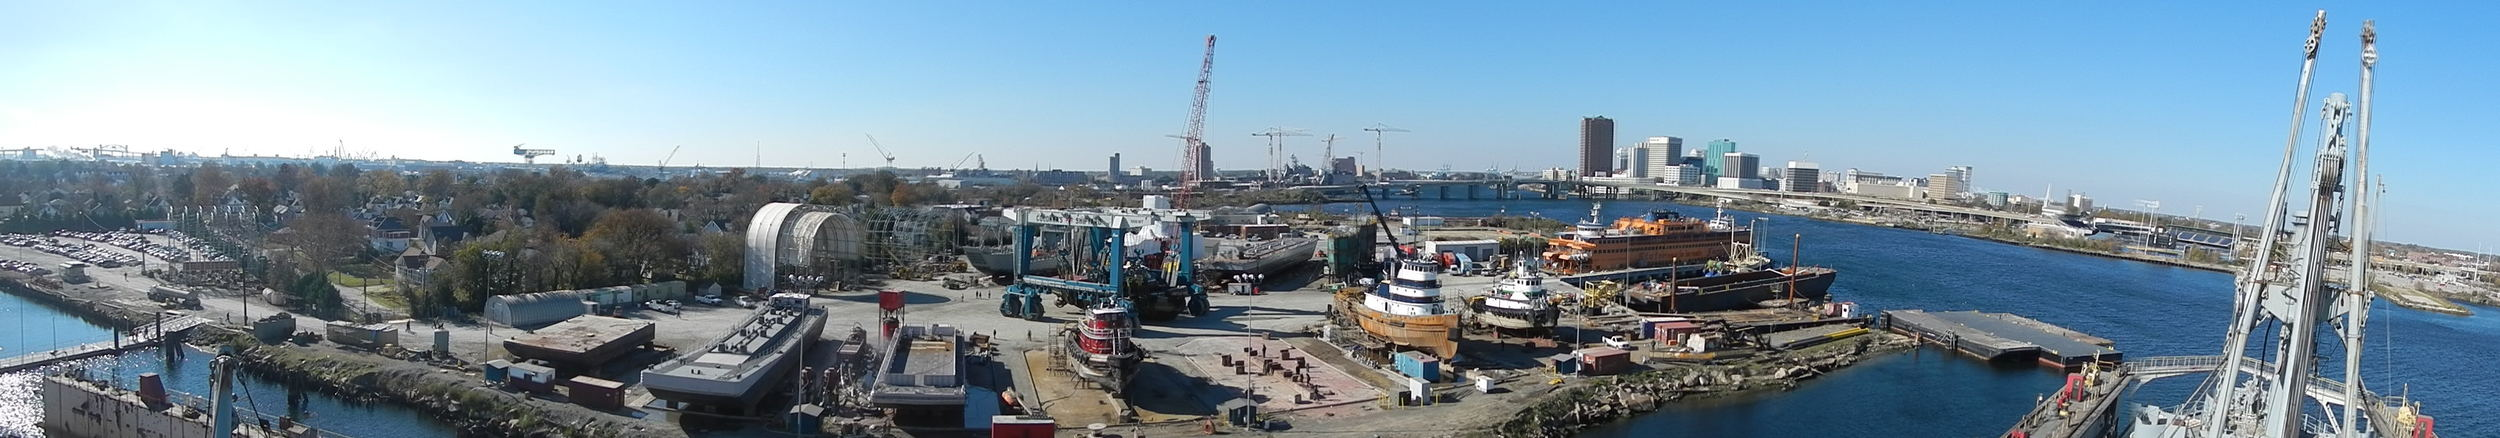 What's going on at Colonna's? CLICK HERE to seemid-morning panoramic view from the BROWN's main mast!